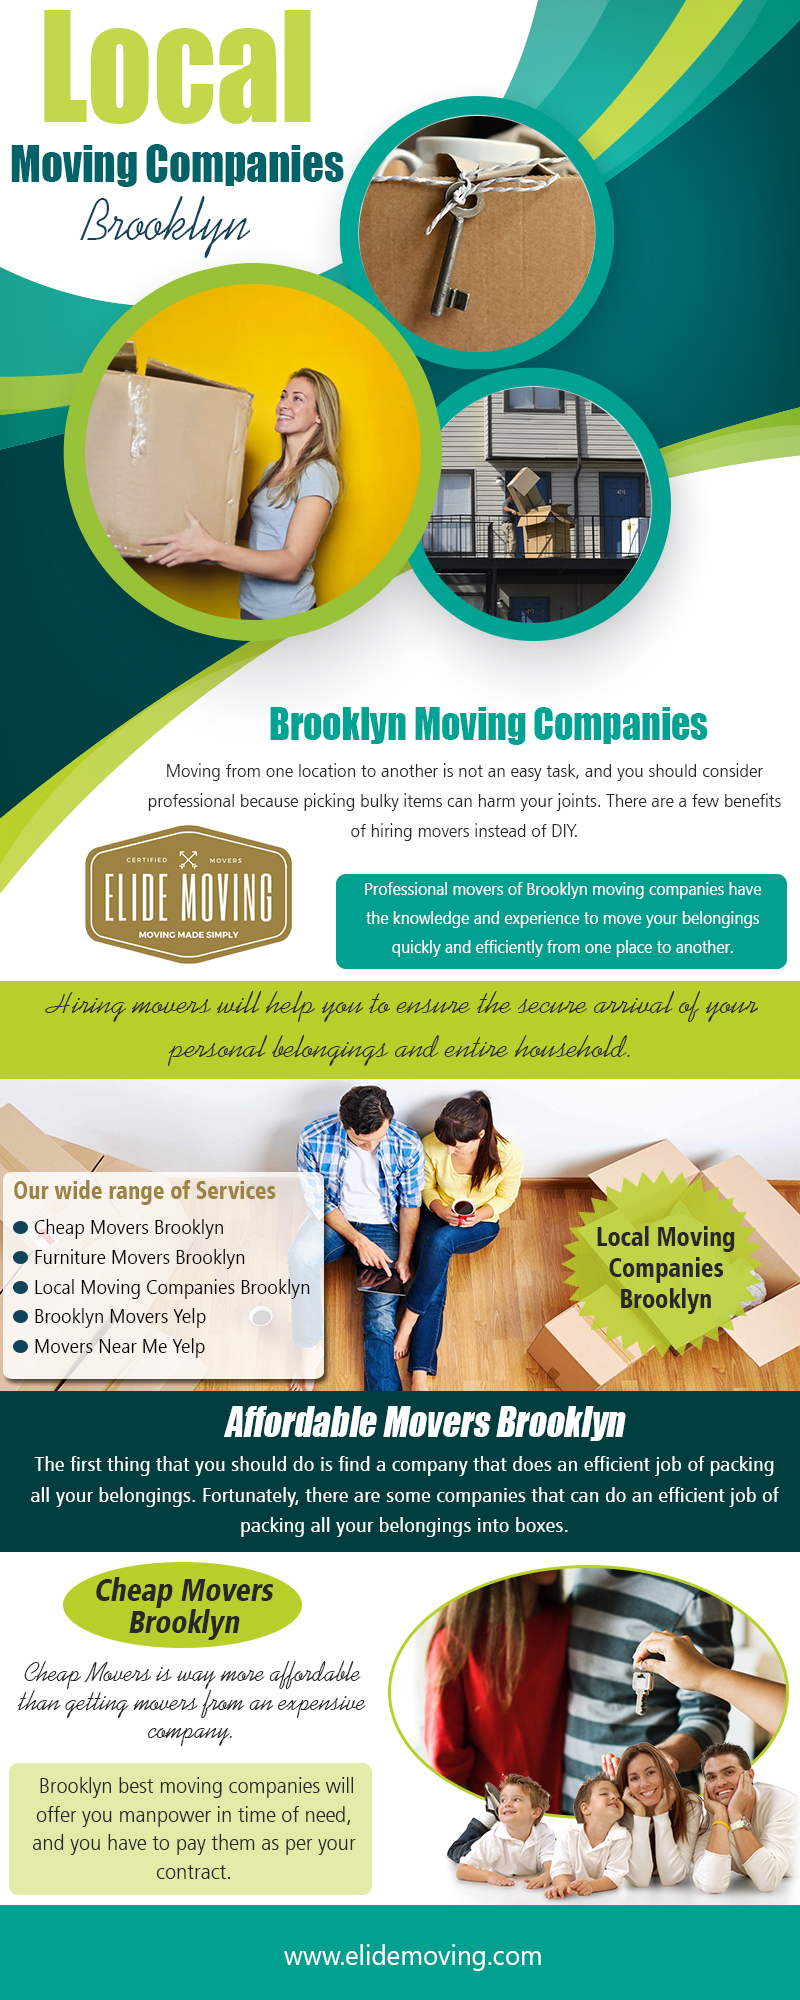 Local Moving Companies Brooklyn